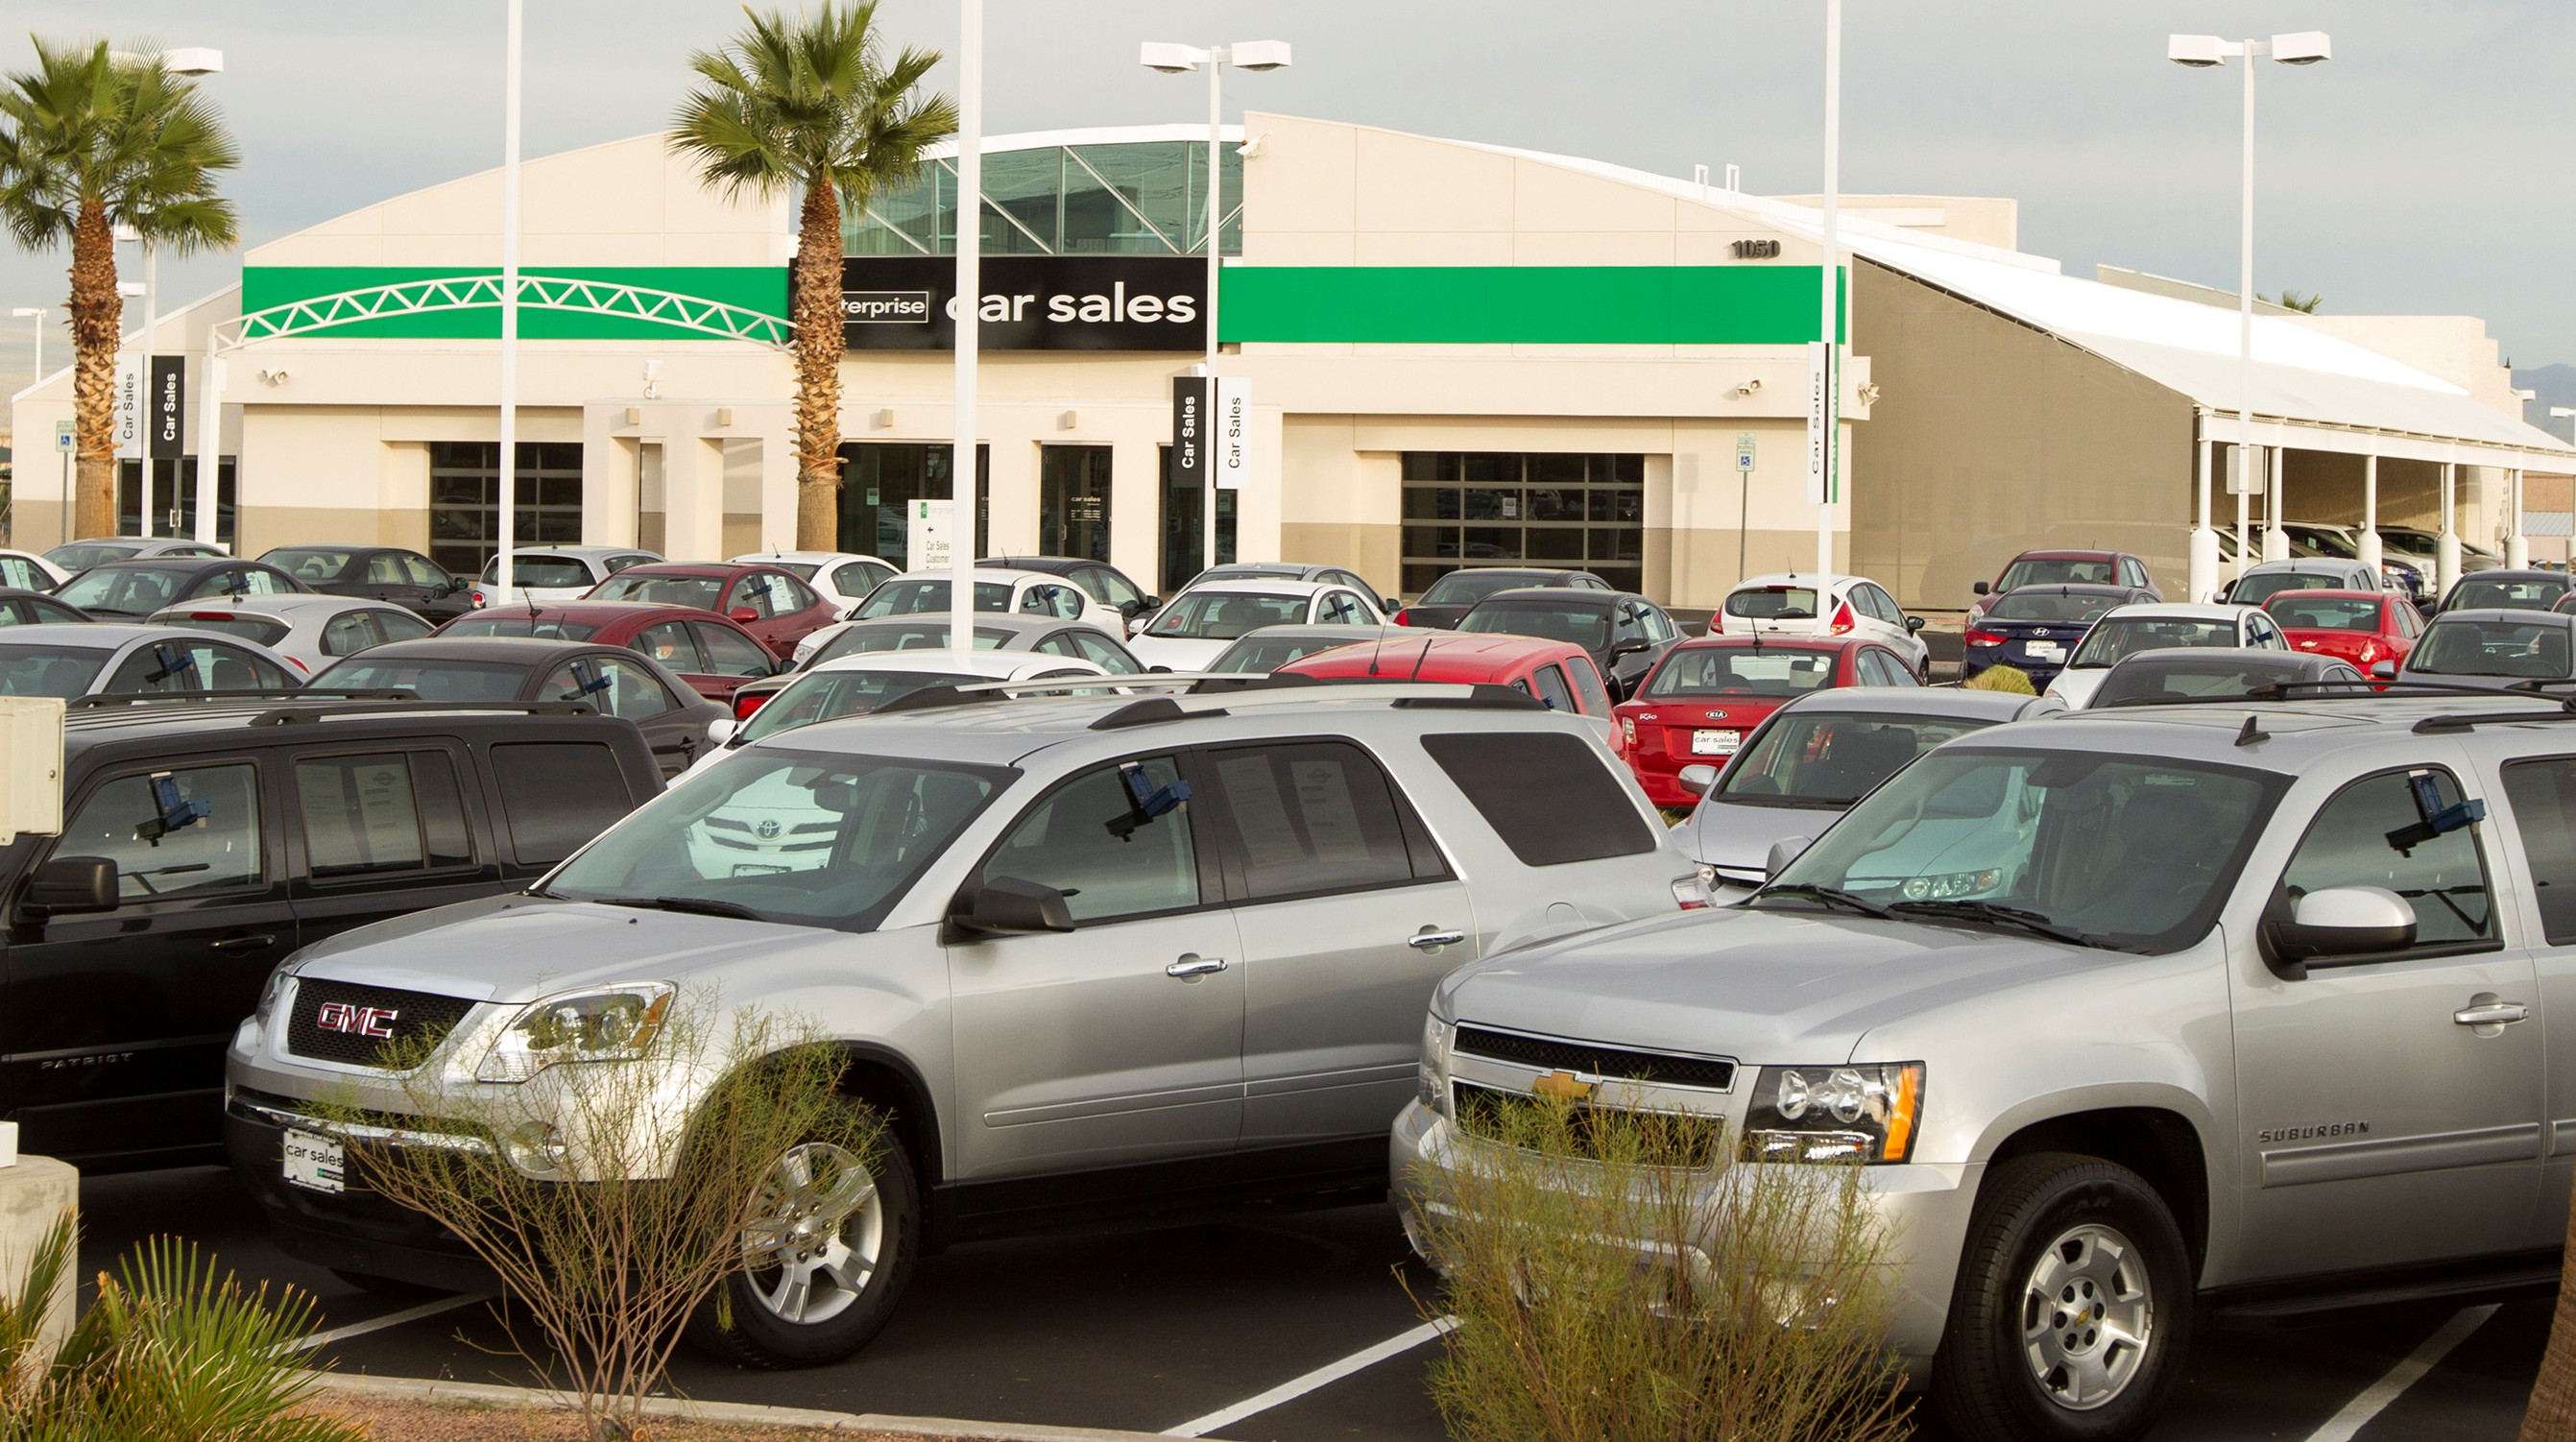 Enterprise Car Sales' Largest Used Car Showroom In U.S. Opens at Henderson Auto Mall  CUInsight